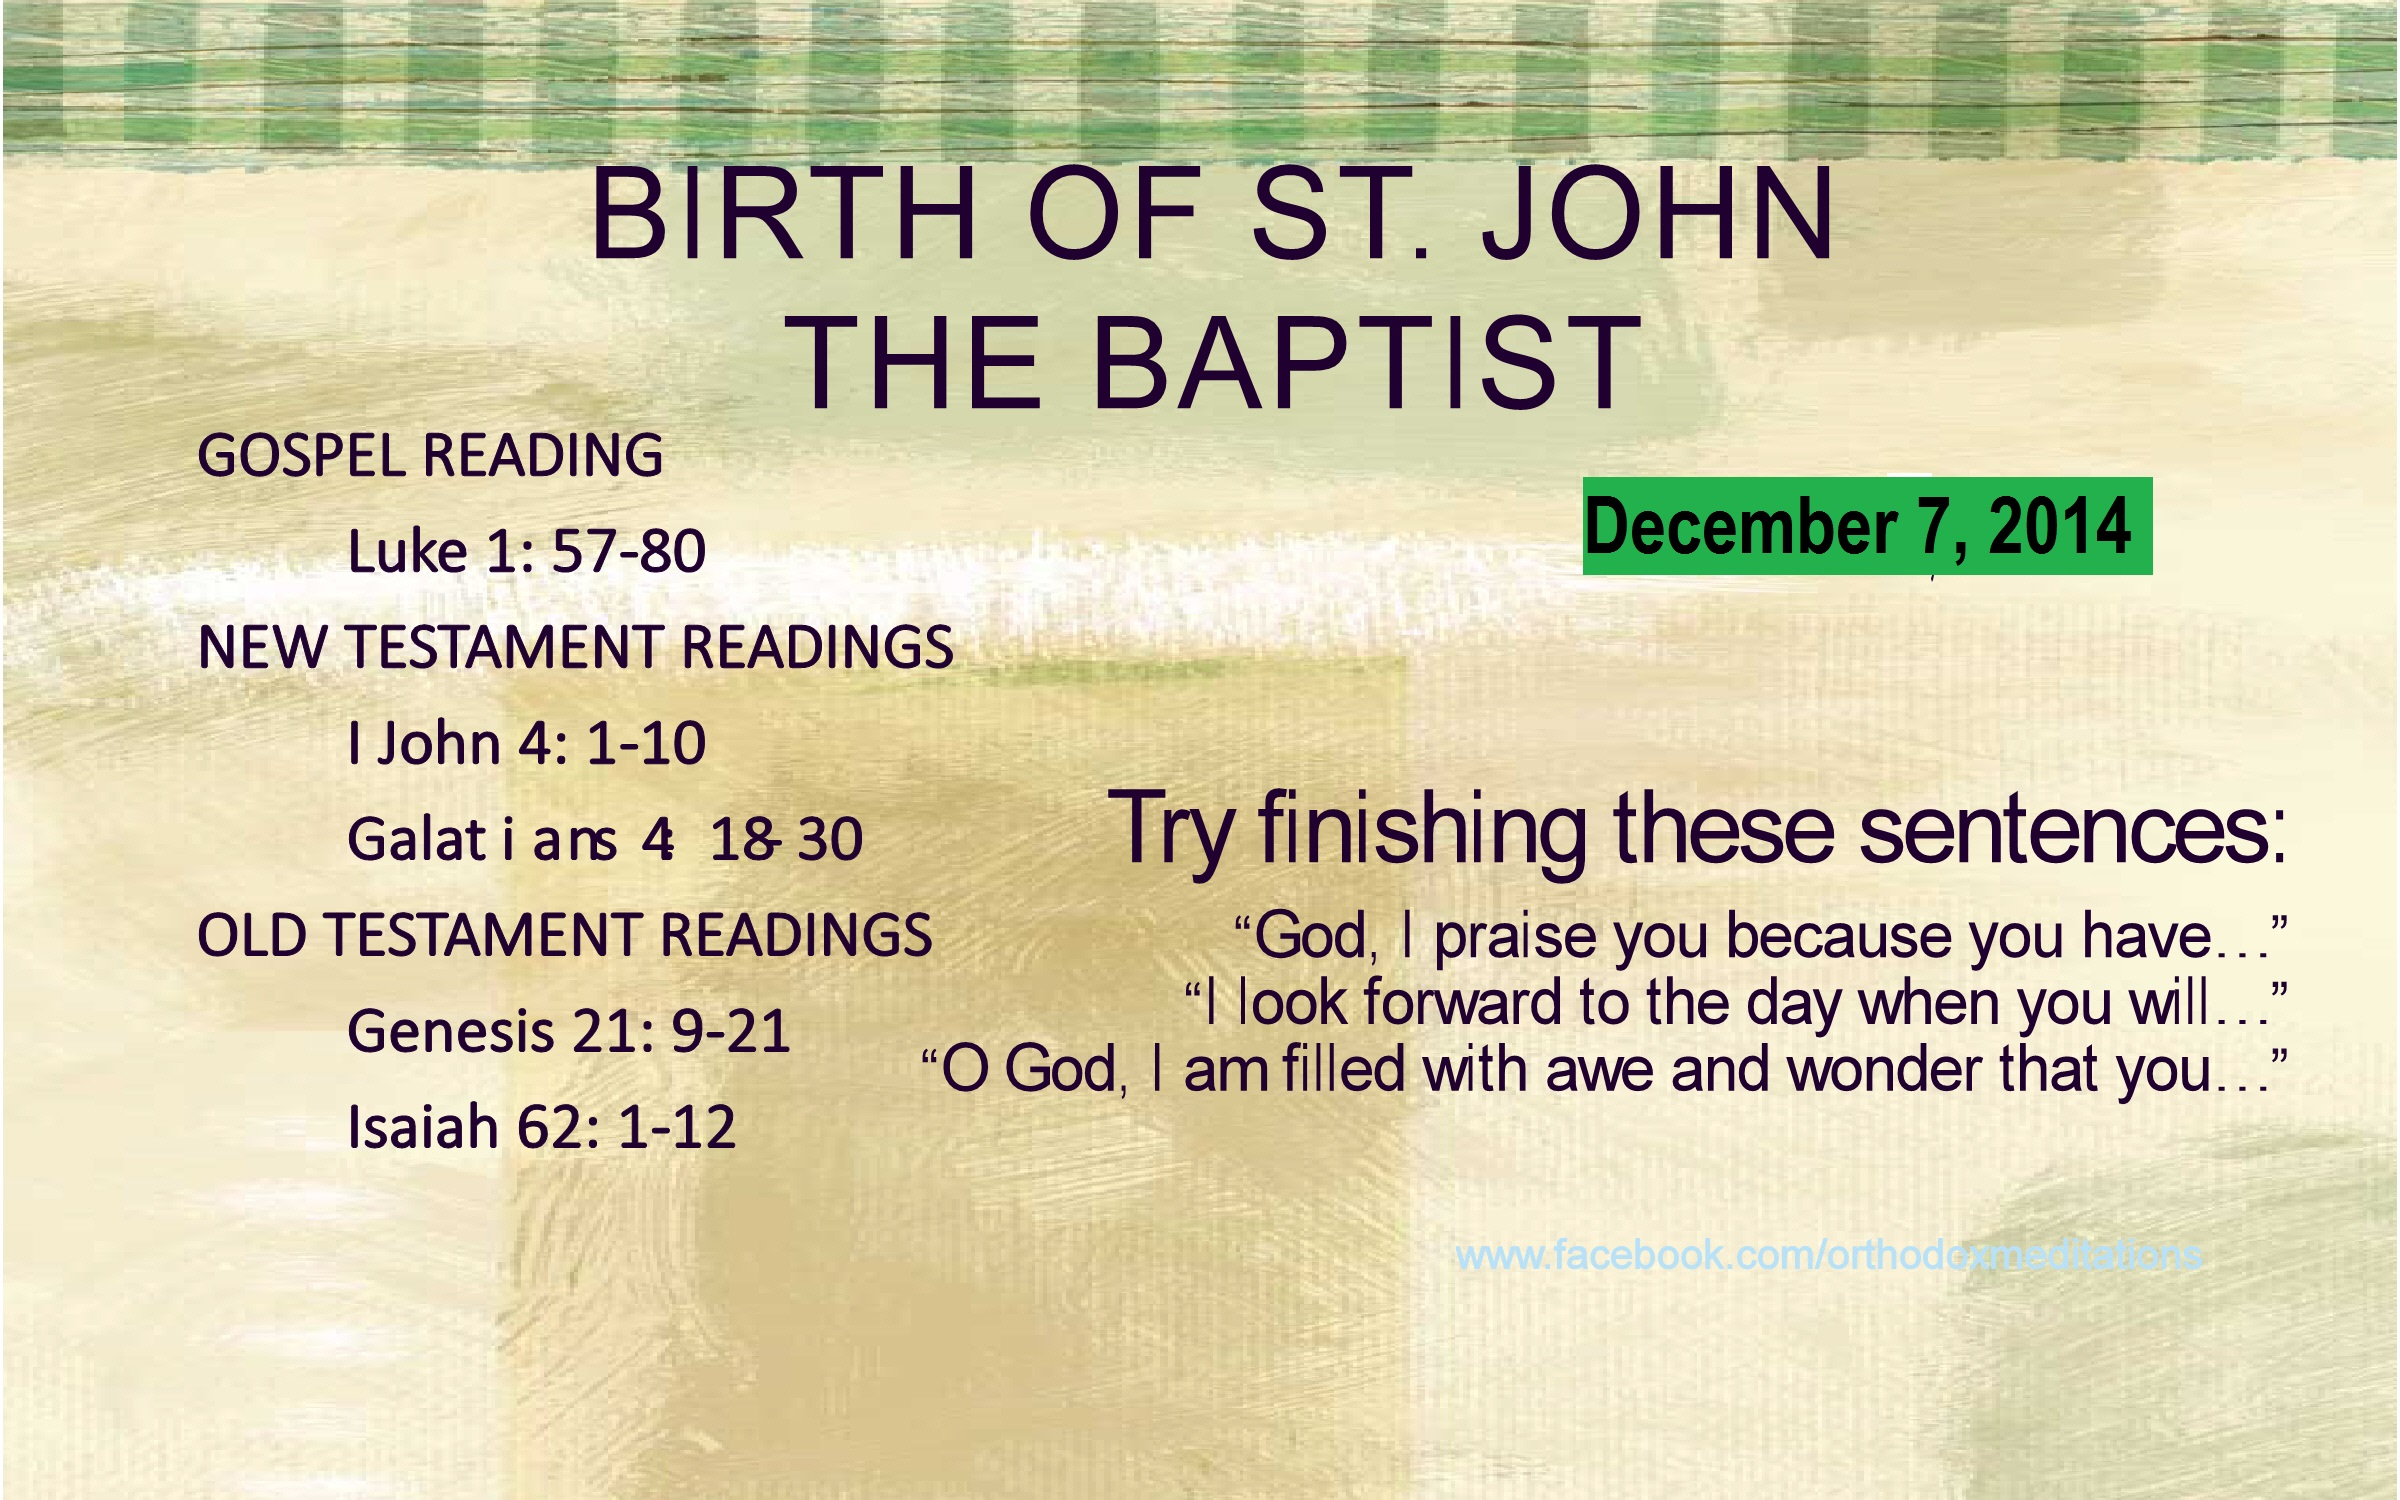 Birth-of-St.-John-the-Baptist 2014 001